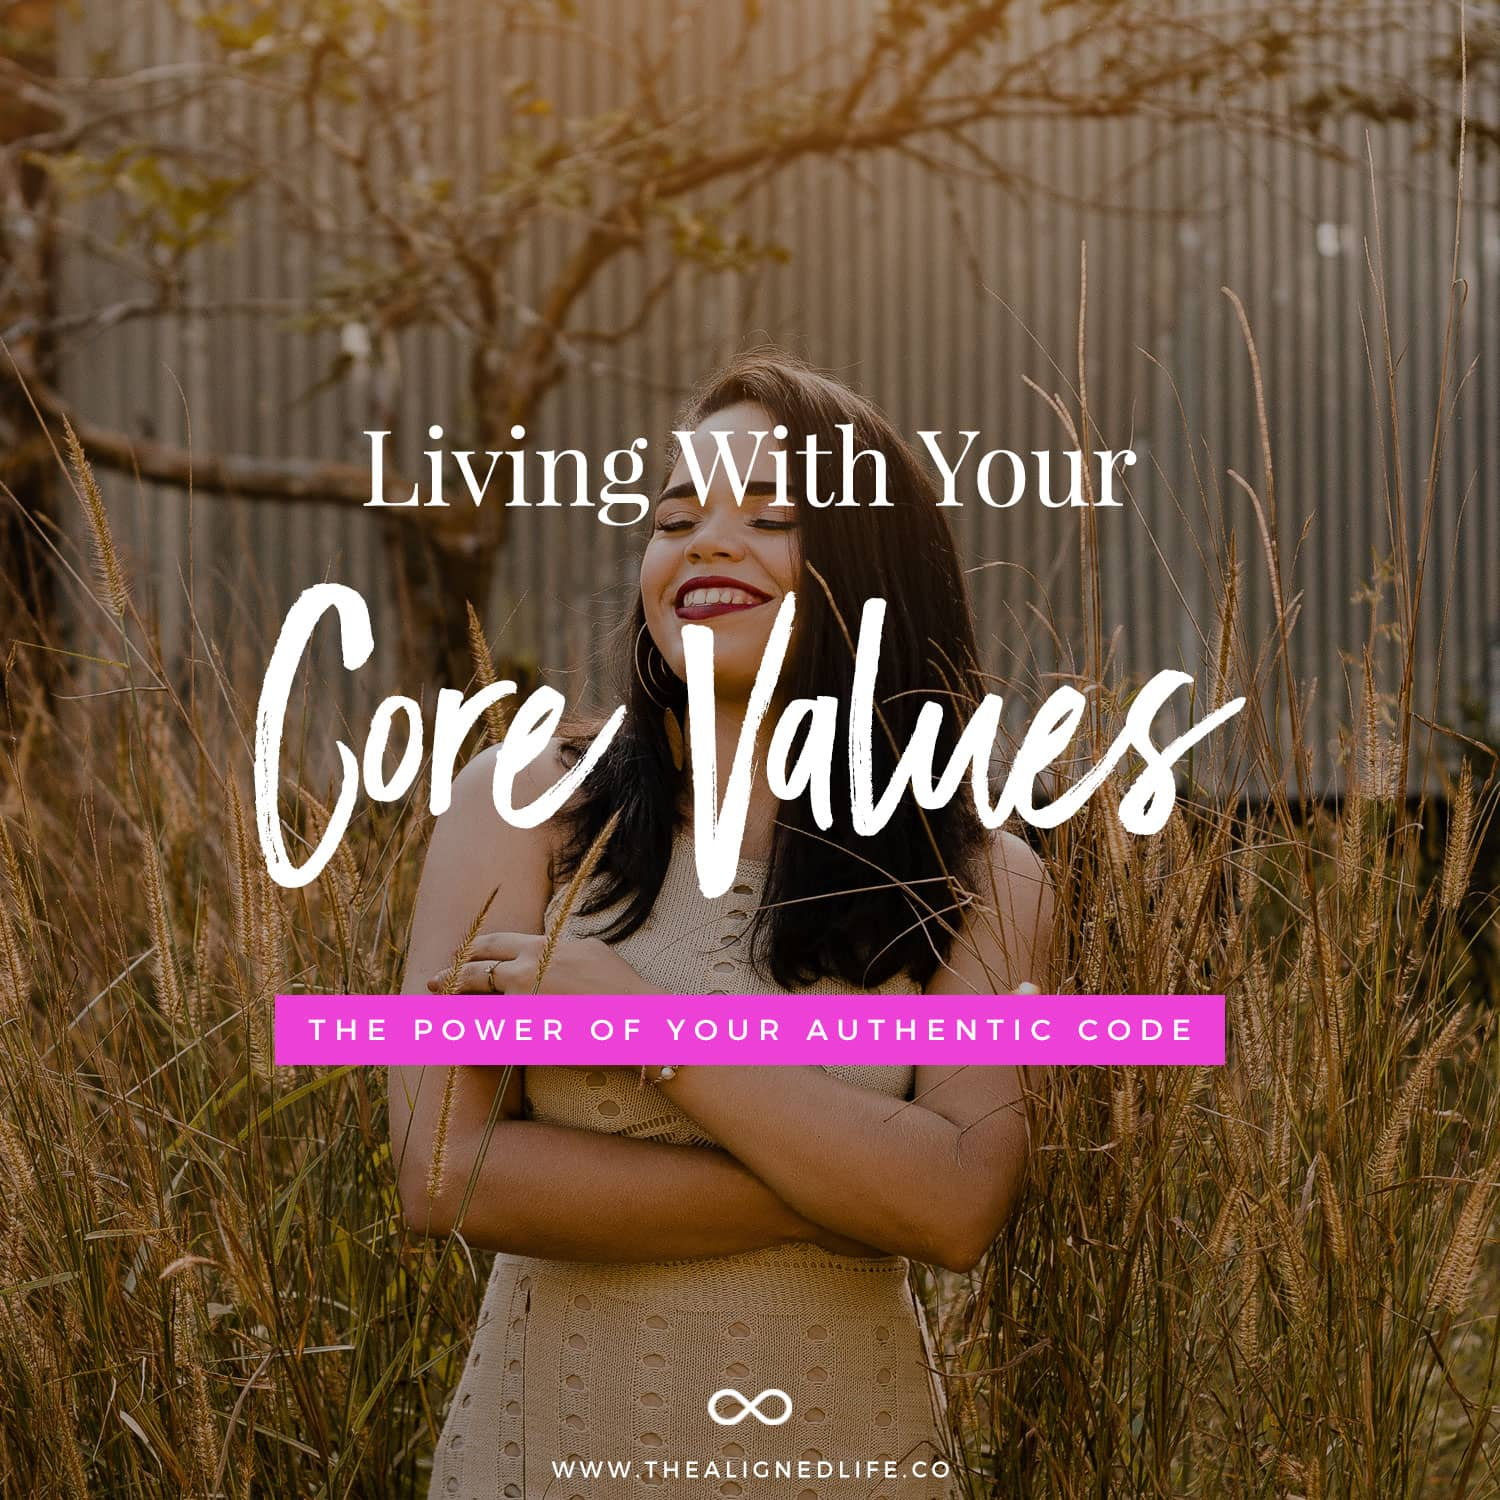 Living From Your Core Values: The Power Of Your Authentic Code